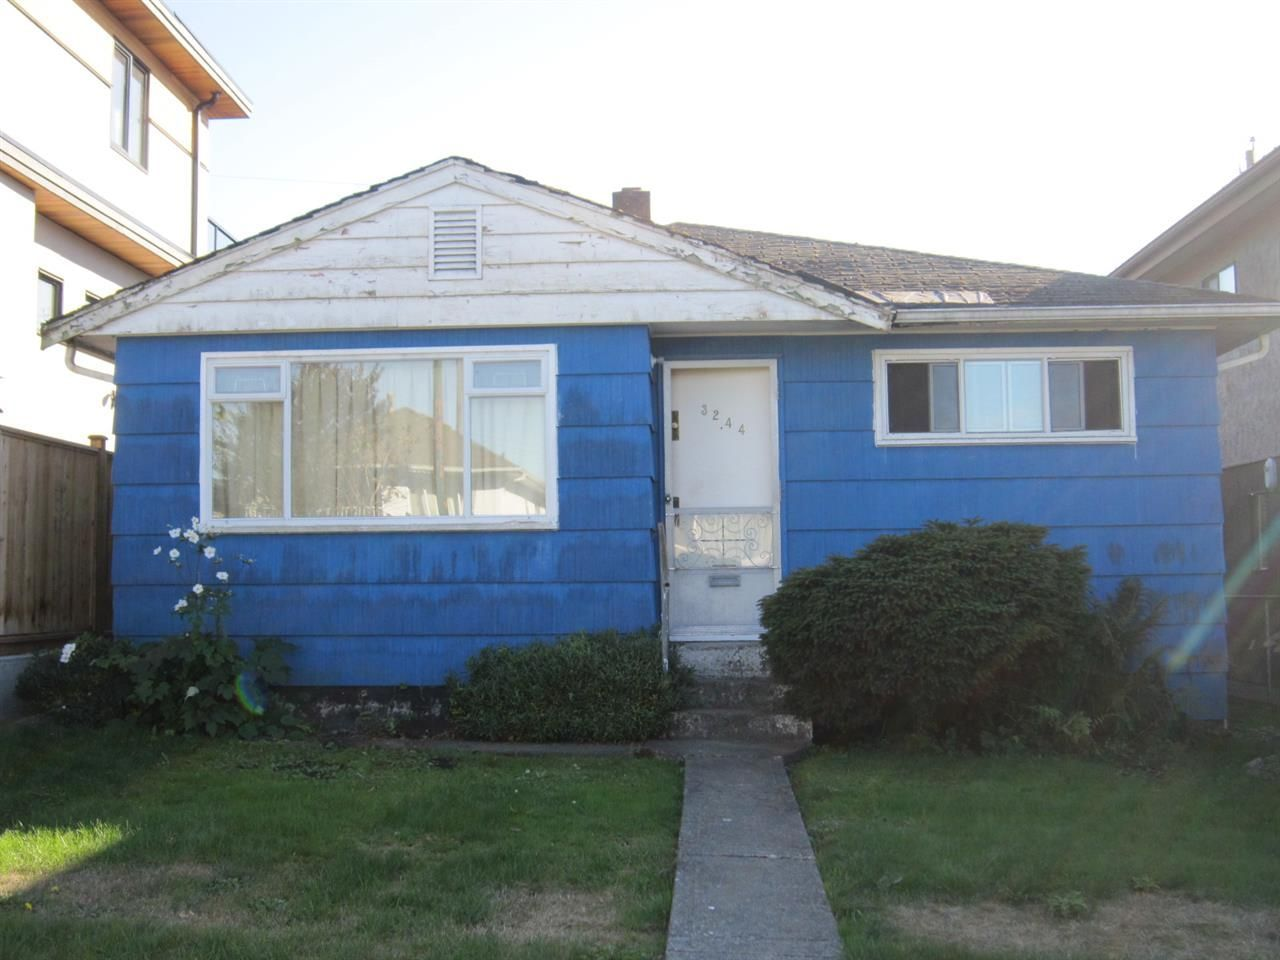 Main Photo: 3244 E 26TH Avenue in Vancouver: Renfrew Heights House for sale (Vancouver East)  : MLS®# R2211928